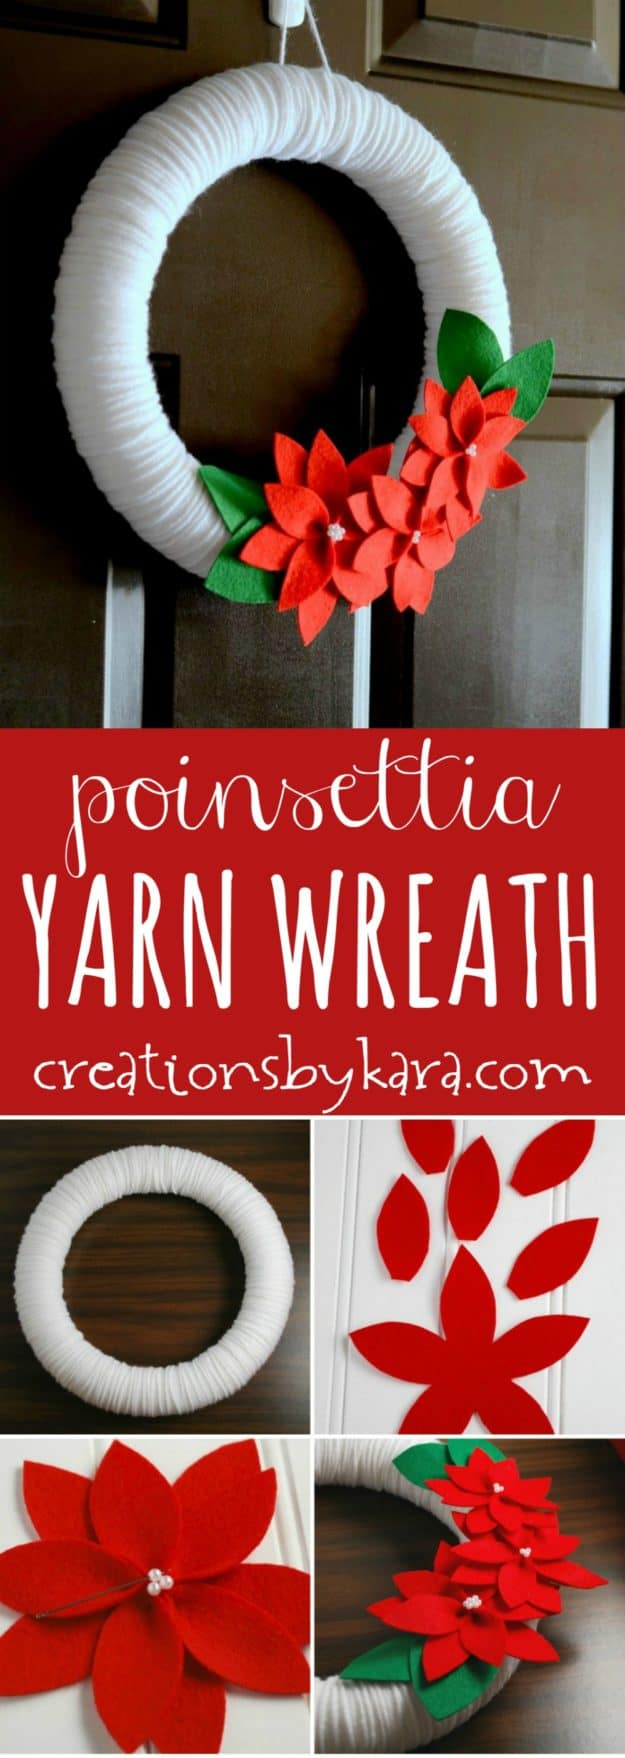 Poinsettia Yarn Christmas Wreath tutorial - a beautiful Christmas wreath for your door or walls!